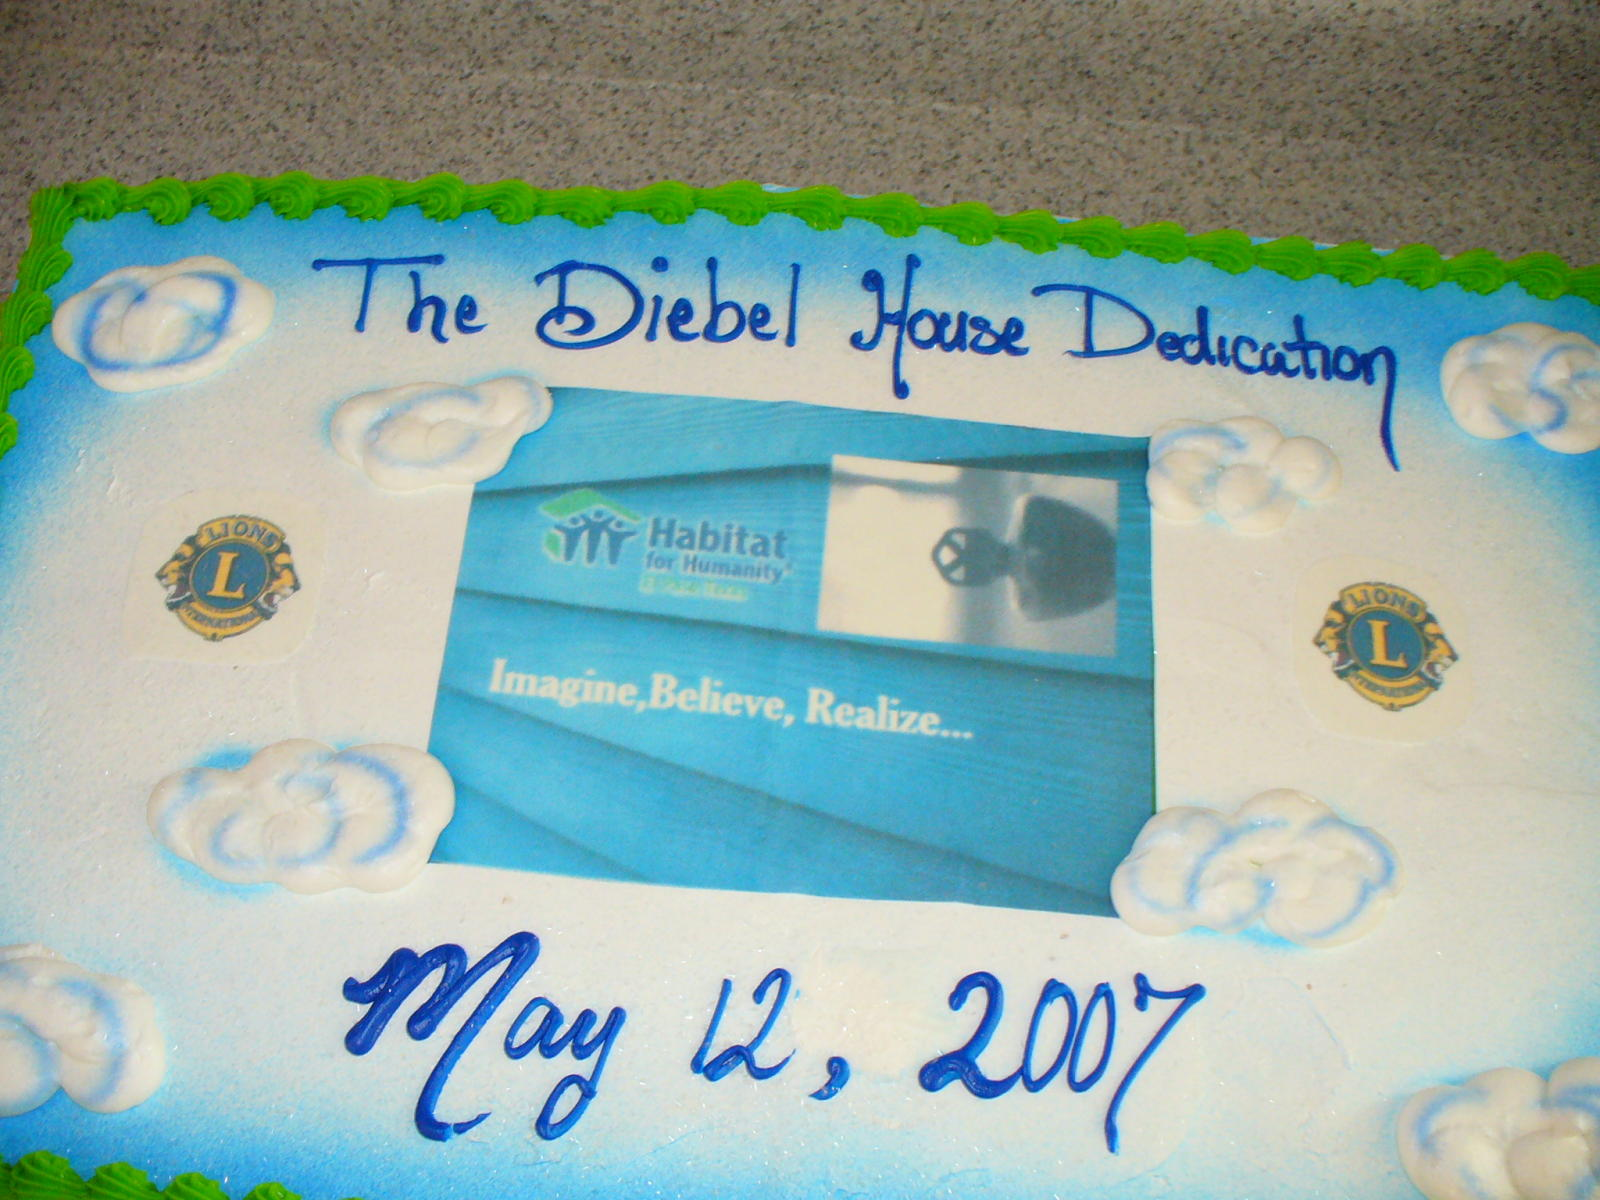 their-dedication-cake_888625026_o